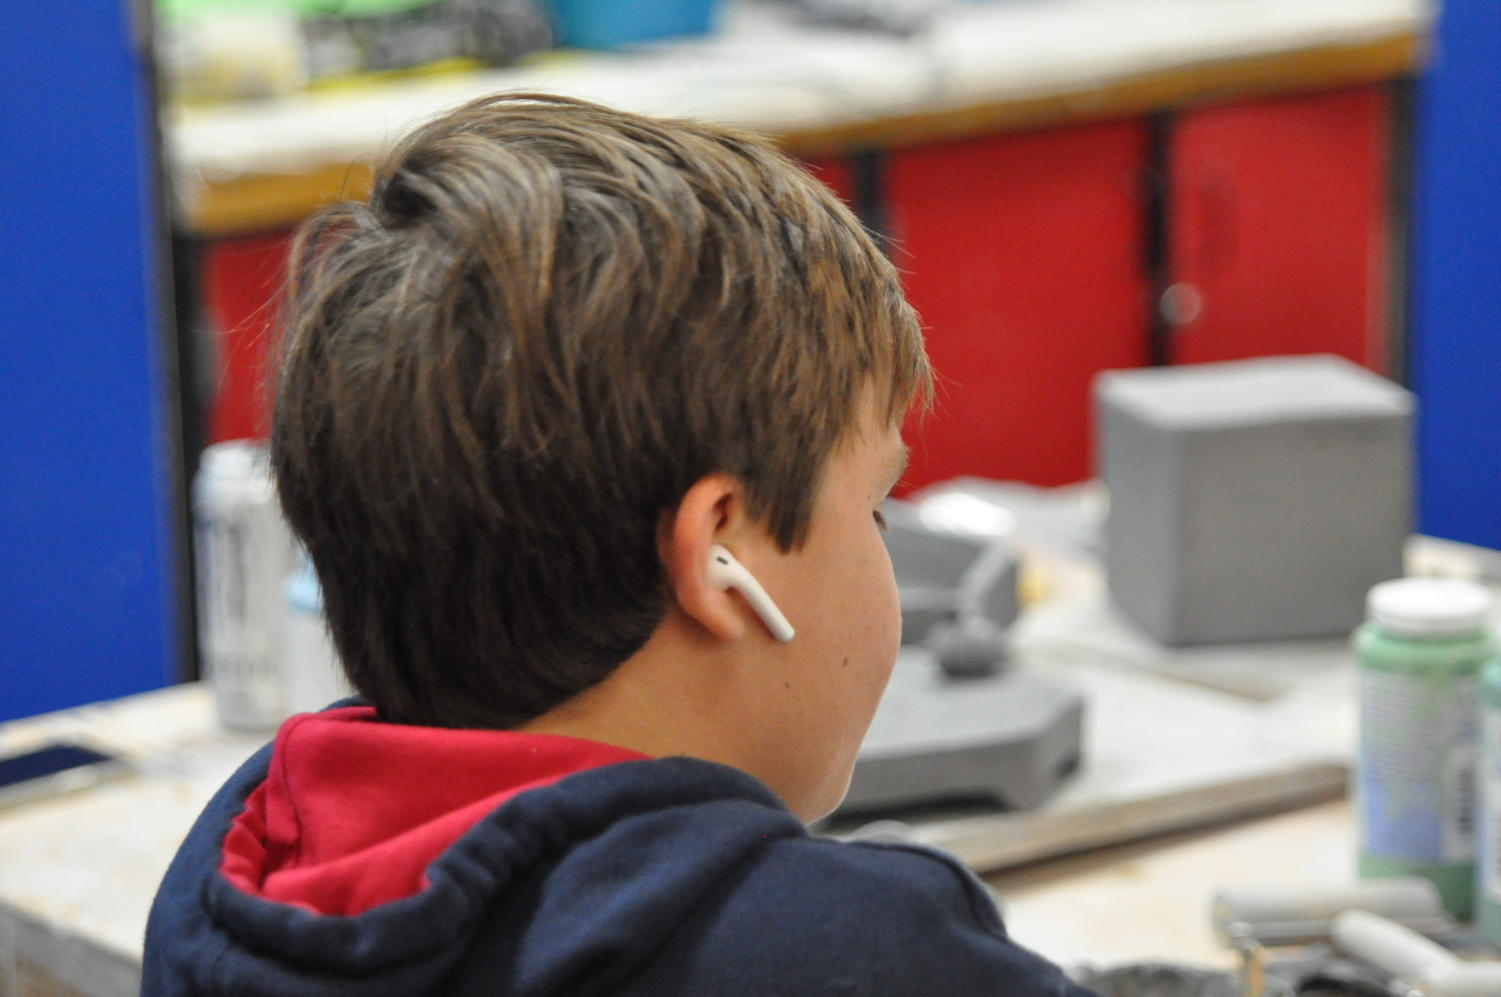 Sophomore Andrew Delanty listens to music on his AirPods while working on a project in Ceramics.